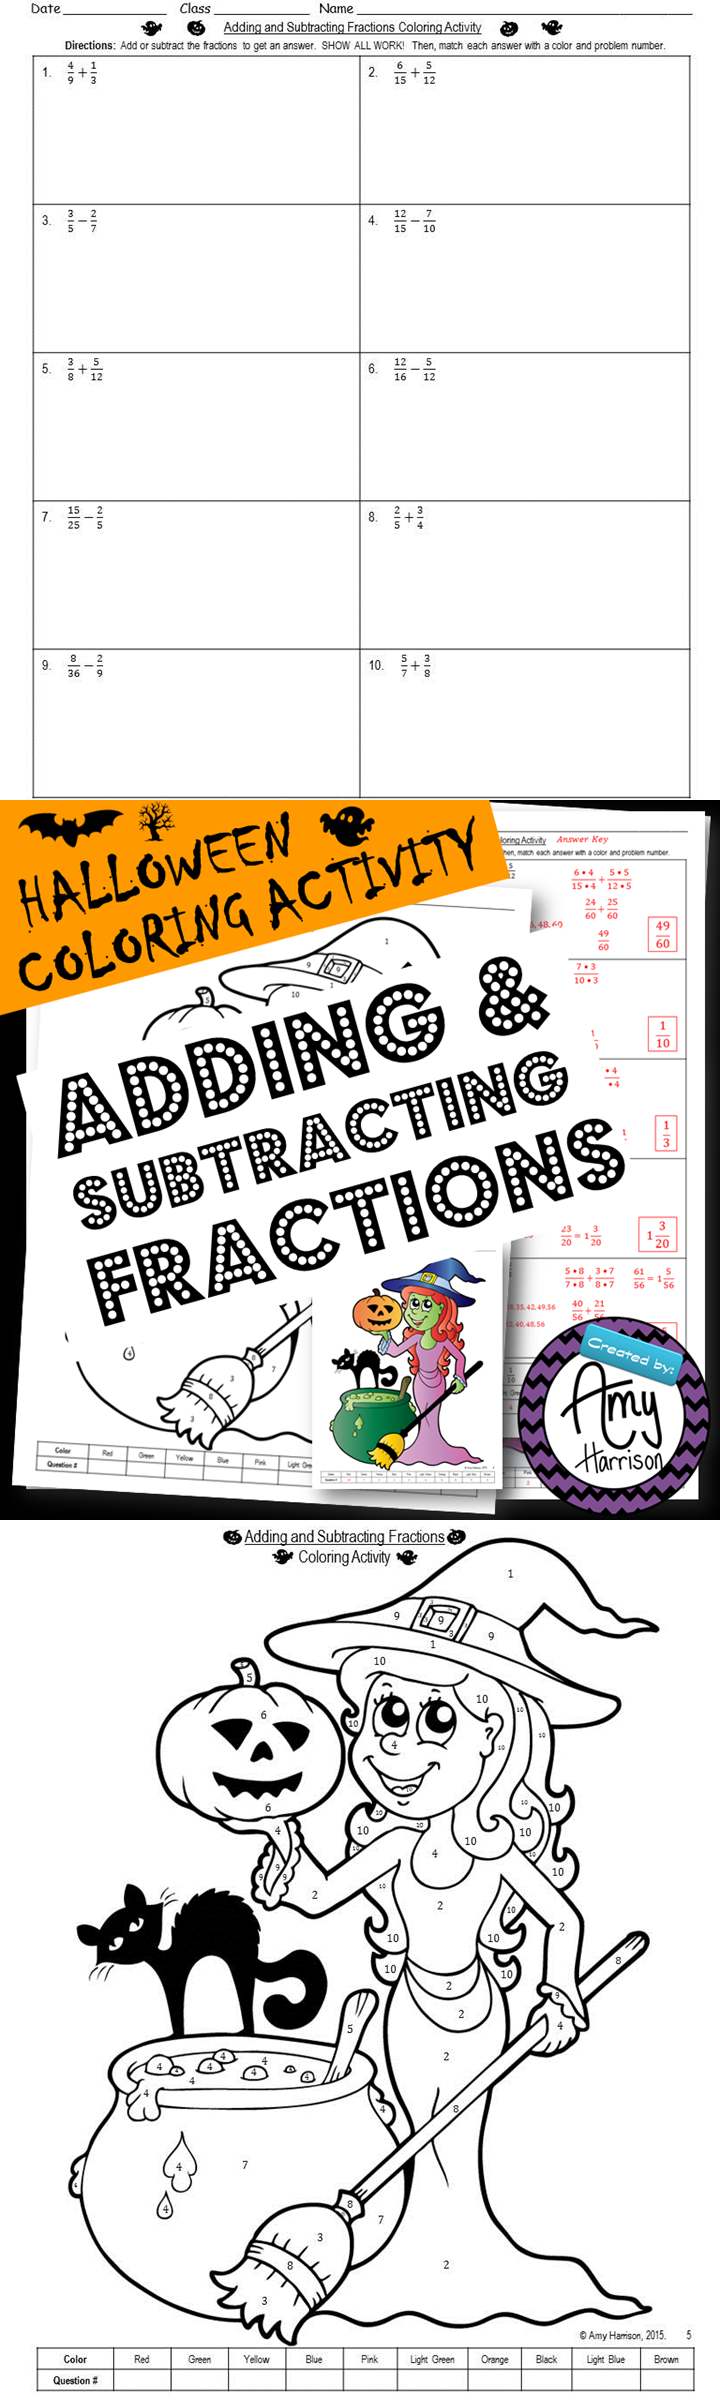 FREE Halloween Coloring Activity Adding and Subtracting